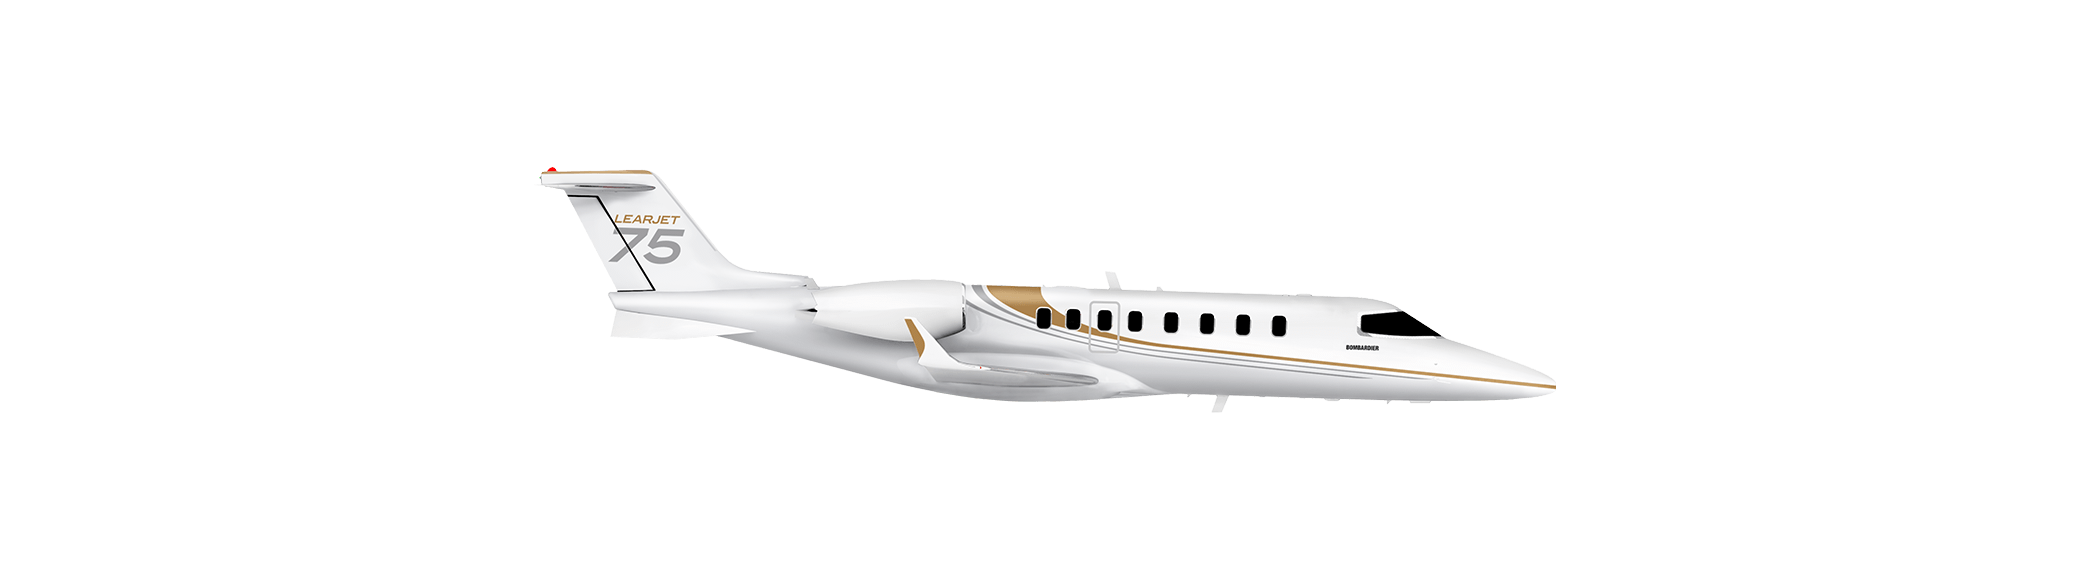 learjet75 side image